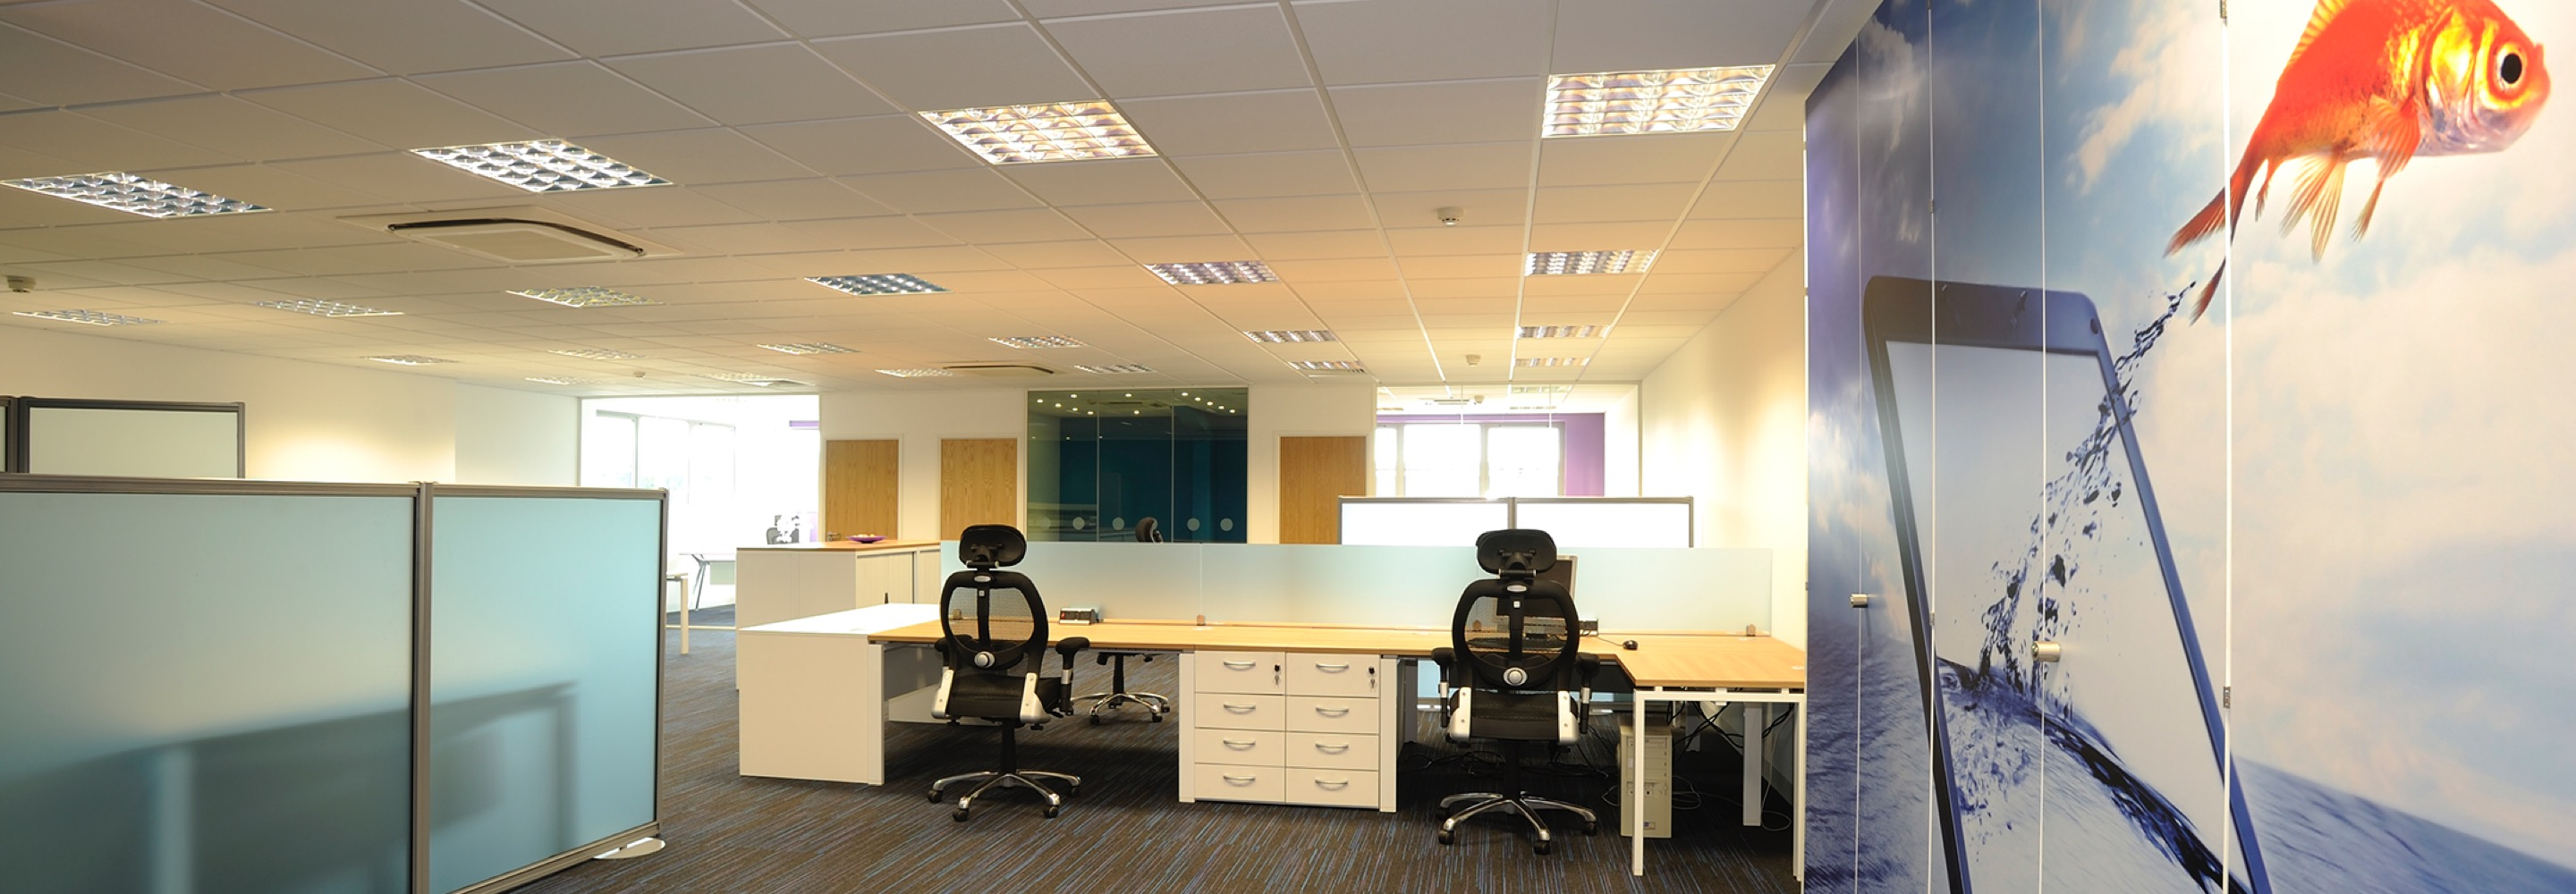 Corporate Interiors Design and Build - modern office layout with wall graphic